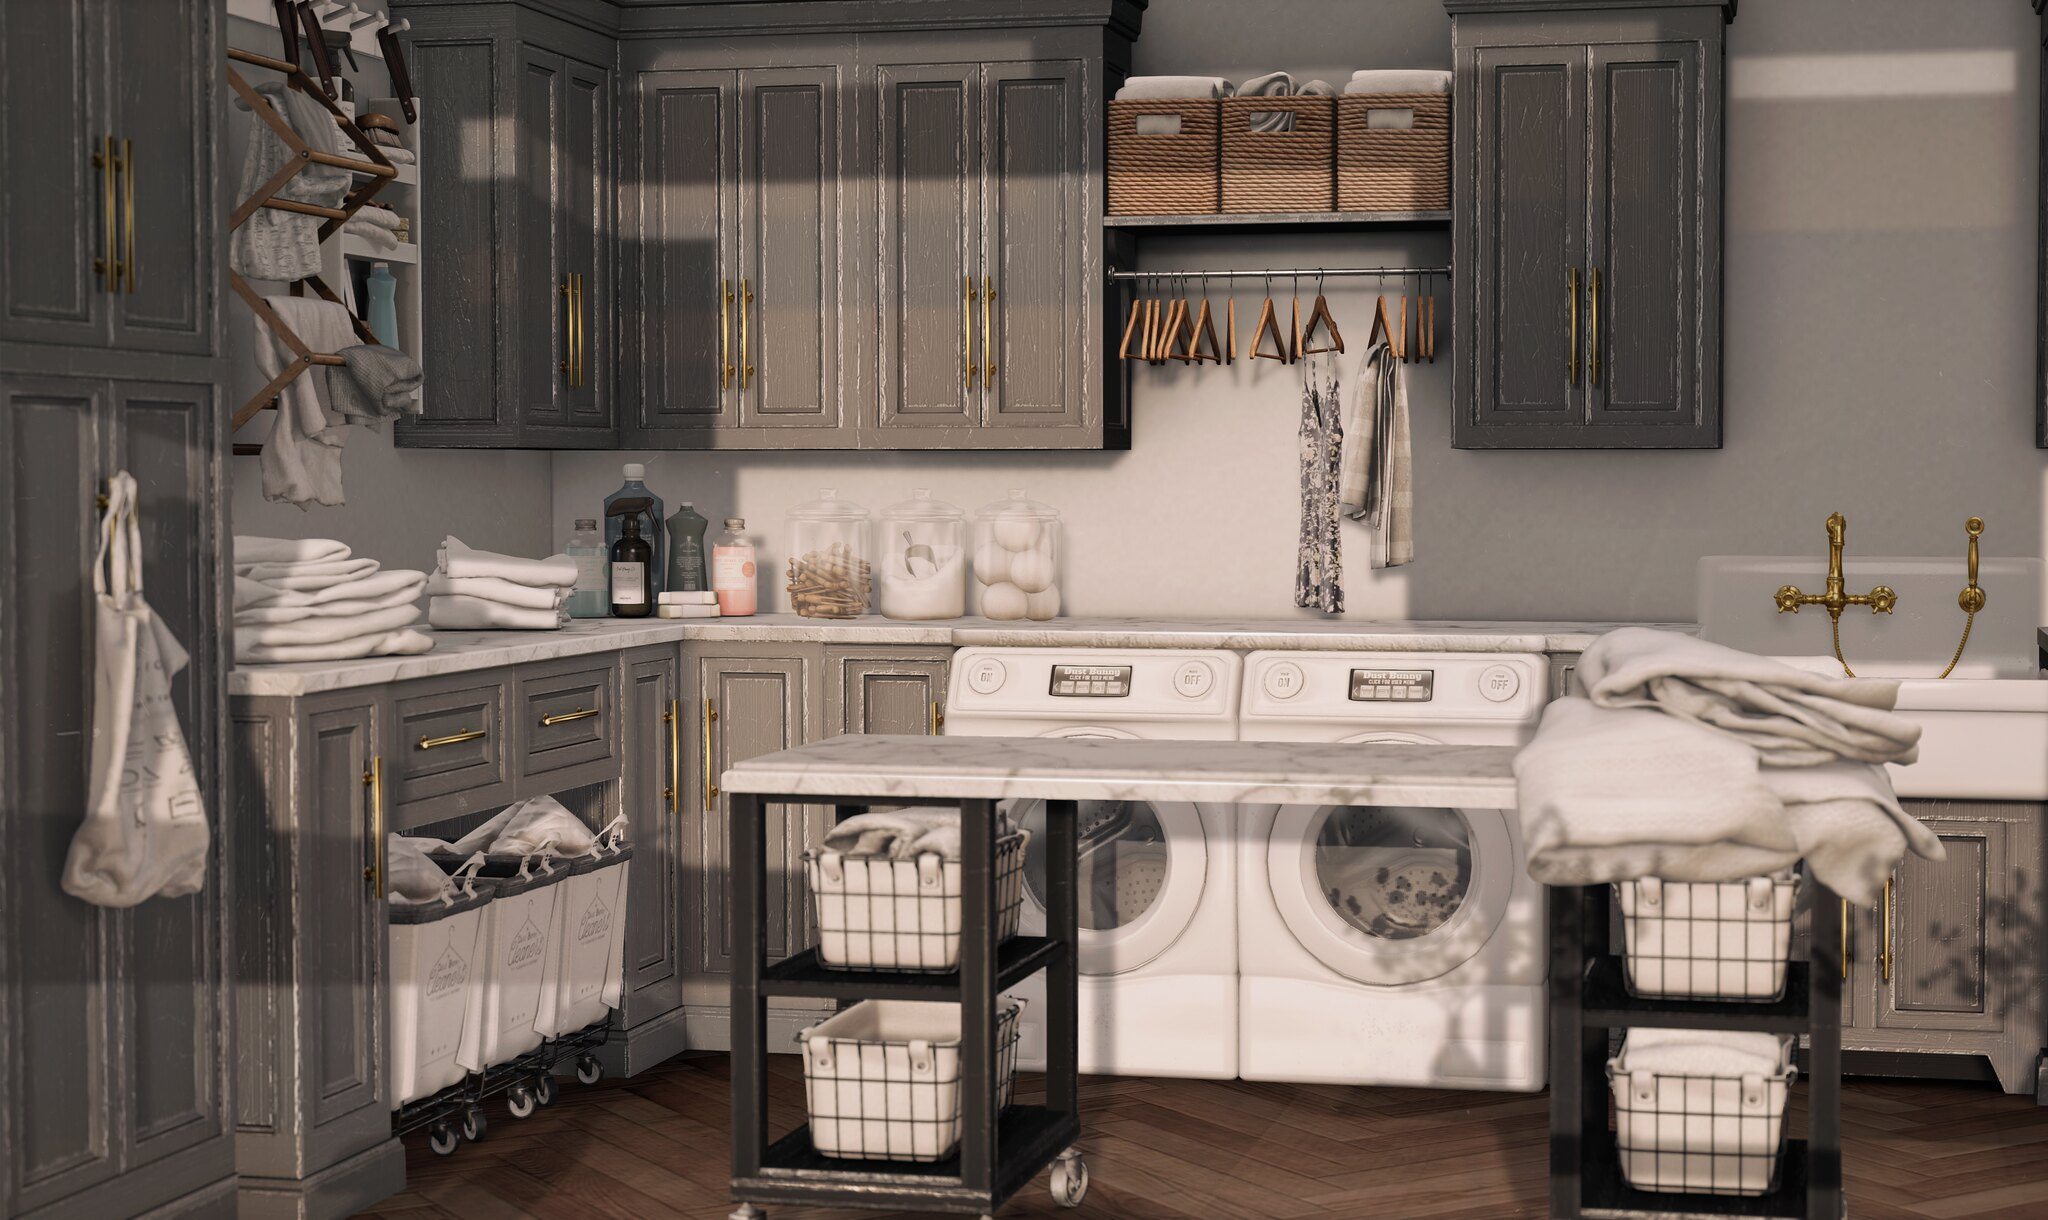 Glamorous Furniture// Laundry Room by Dust Bunny